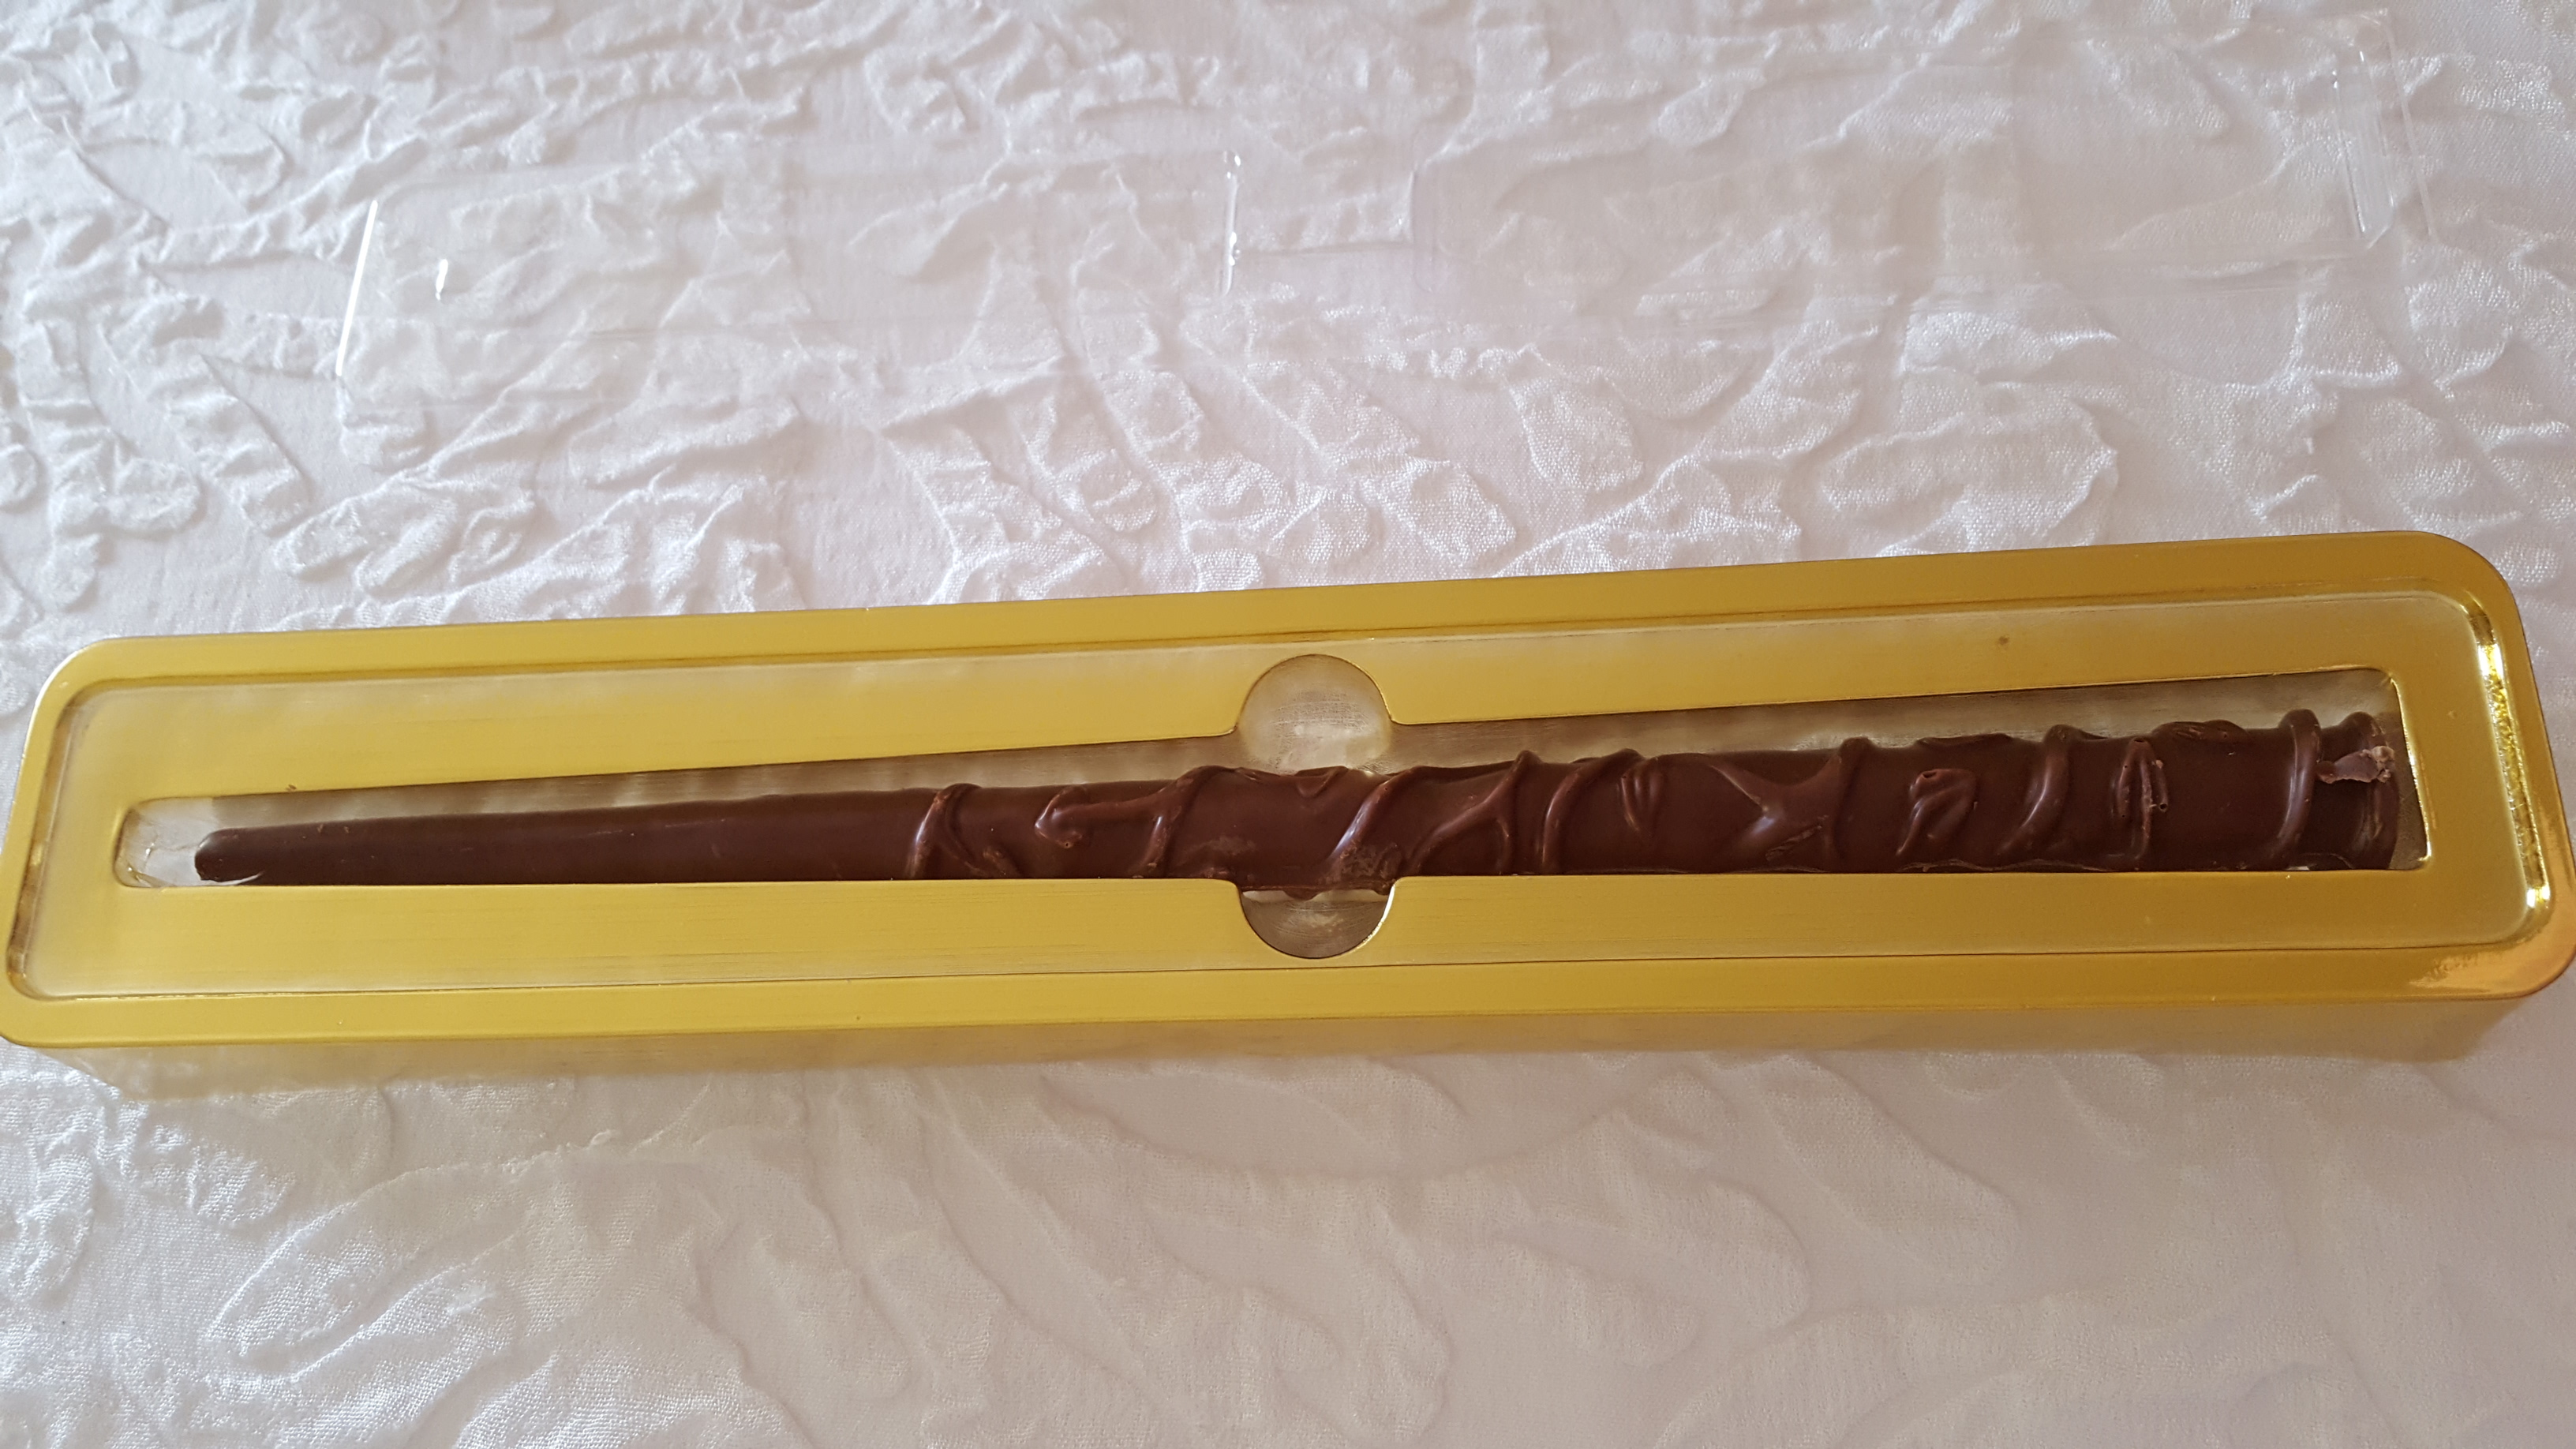 Jelly Belly Hermione Granger chocolate wand in the golden tray